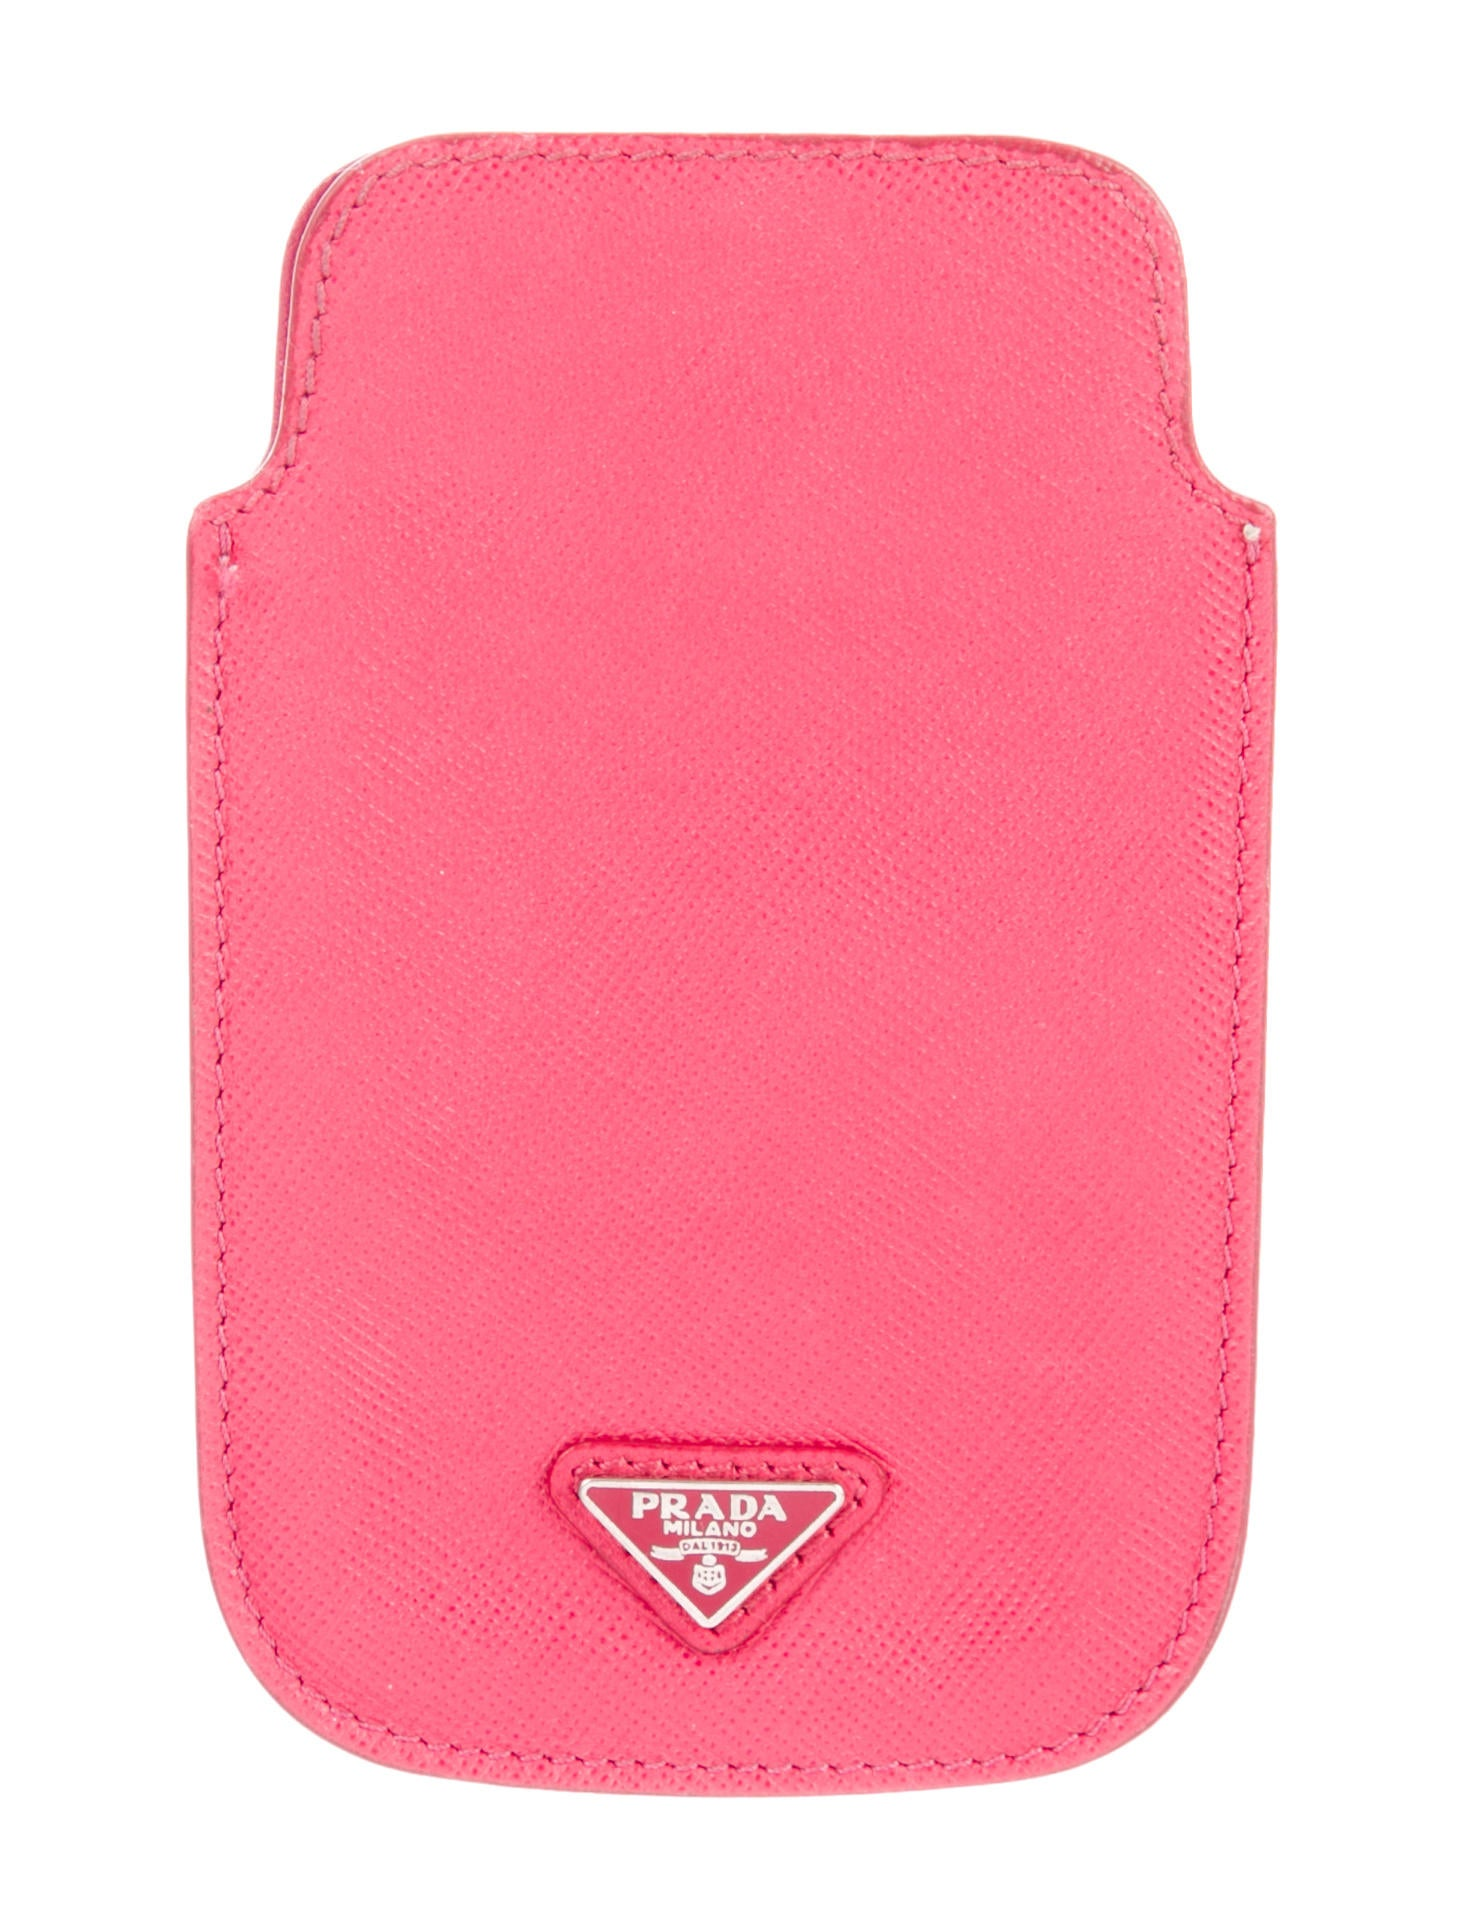 2575d2821862 Prada Saffiano Phone Case - Technology - PRA220619 | The RealReal